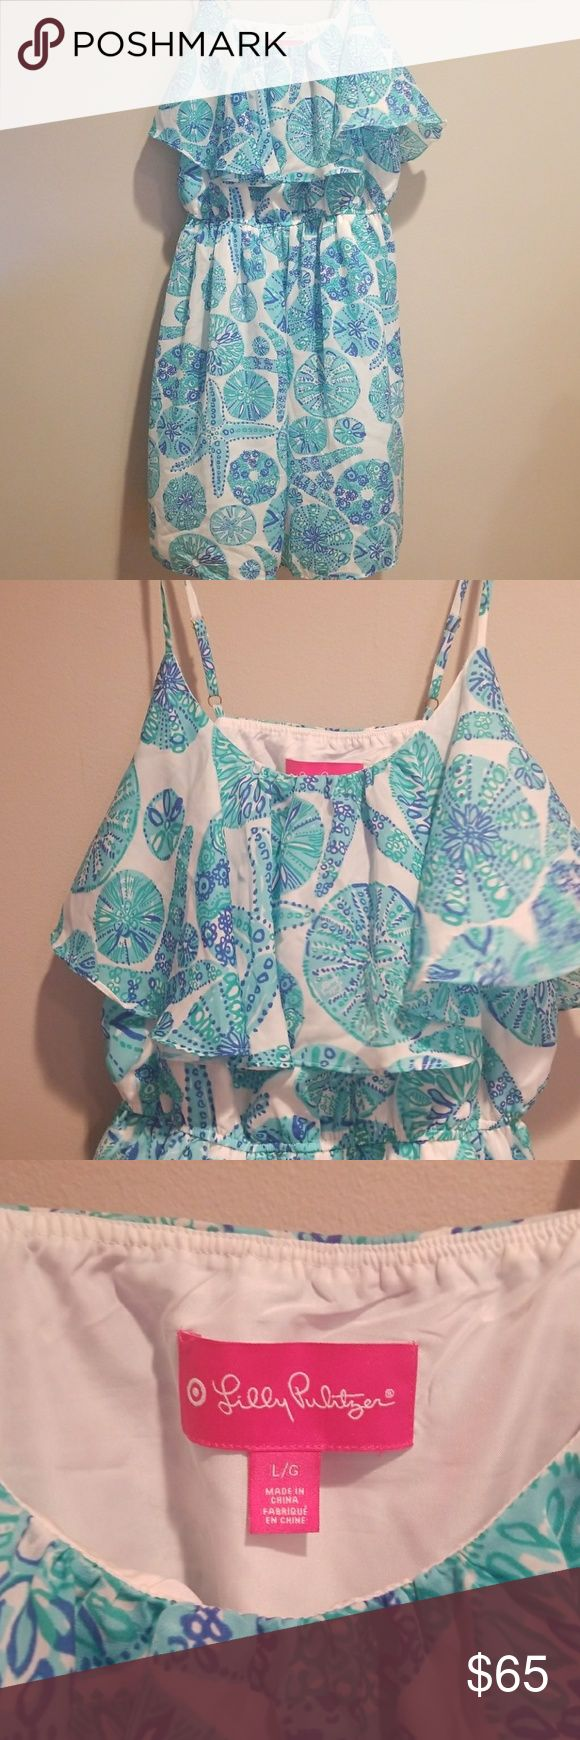 Lilly pulitzer for target dress Lilly pulitzer for target dress size large Lilly Pulitzer for Target Dresses Midi